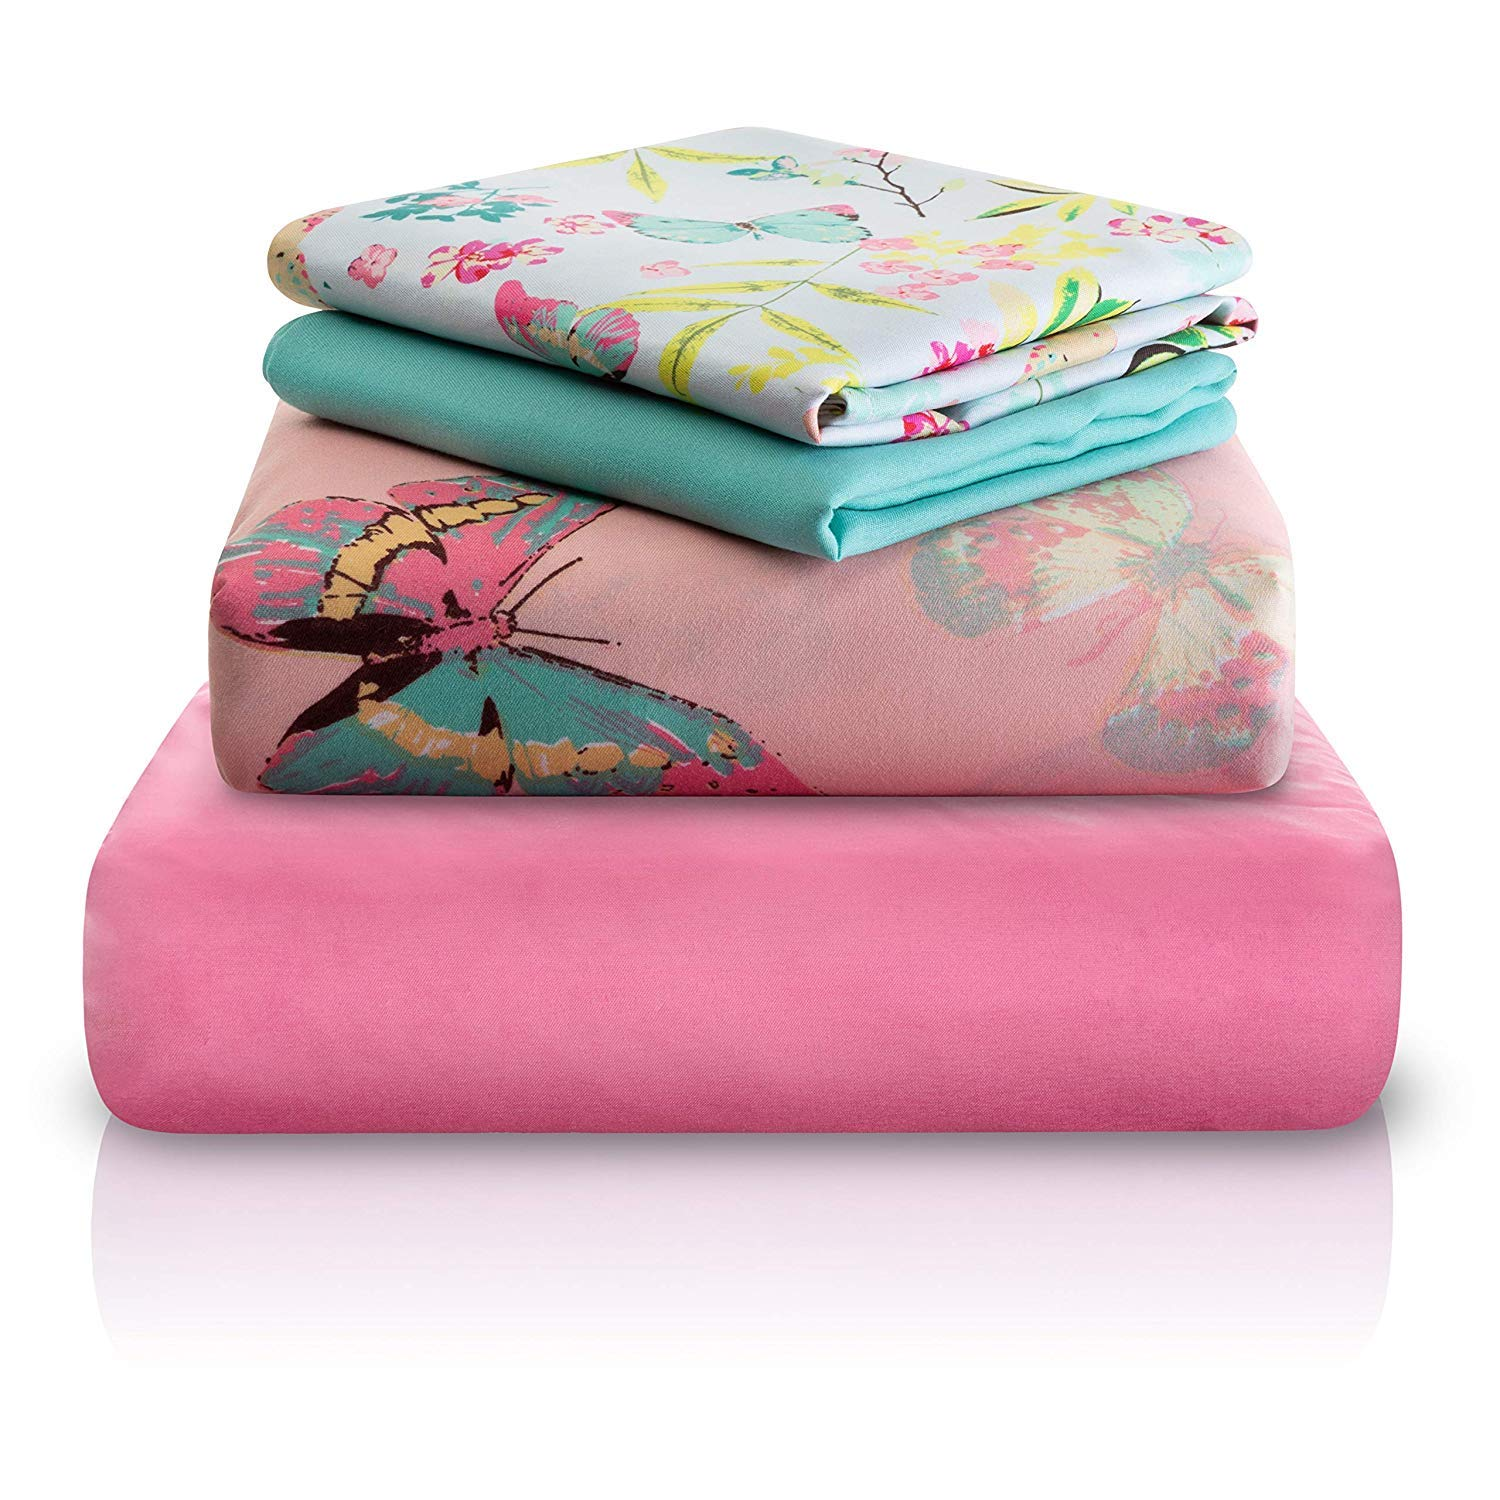 Chital Full Bed Sheets for Girls | 4 Pc Colorful Kids Bedding Set | Pink Decorative Butterfly Print | Durable Super-Soft, Double-Brushed Microfiber | 1 Flat & 1 Fitted Sheet, 2 Pillow Cases | 15'' Deep